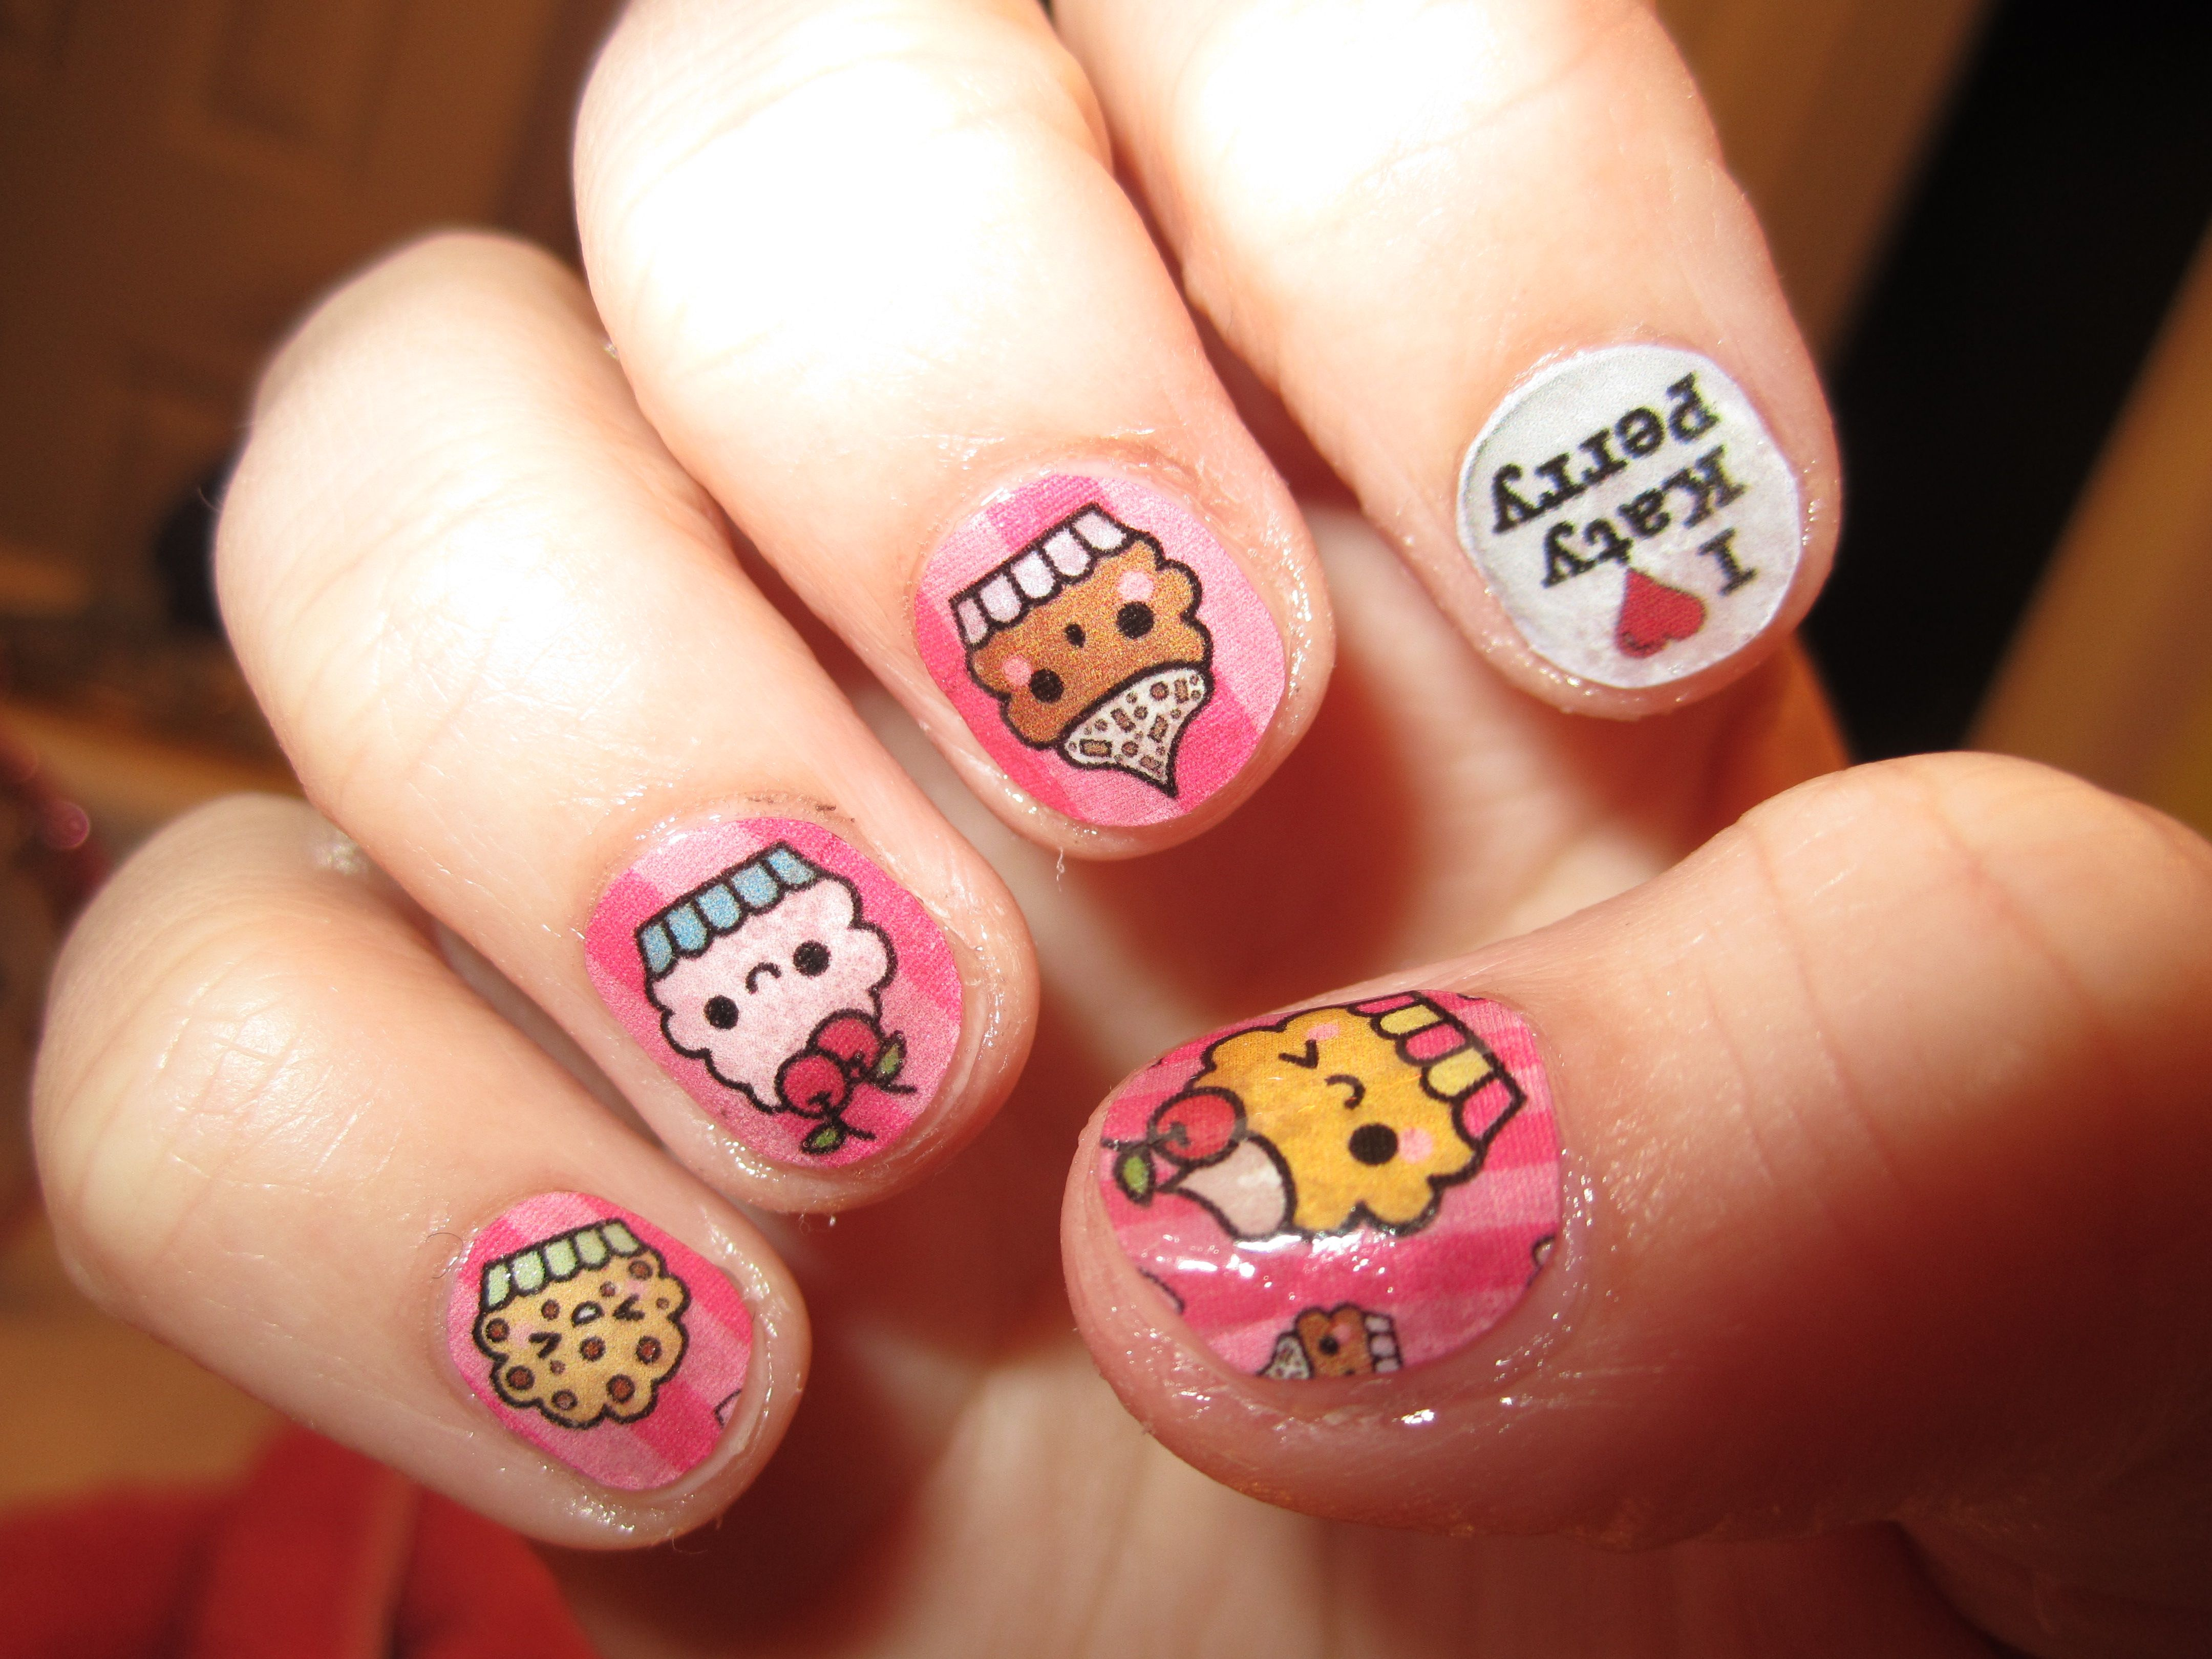 Cupcakes and Katy Perry nails <3 | Nails | Pinterest | Katy perry ...